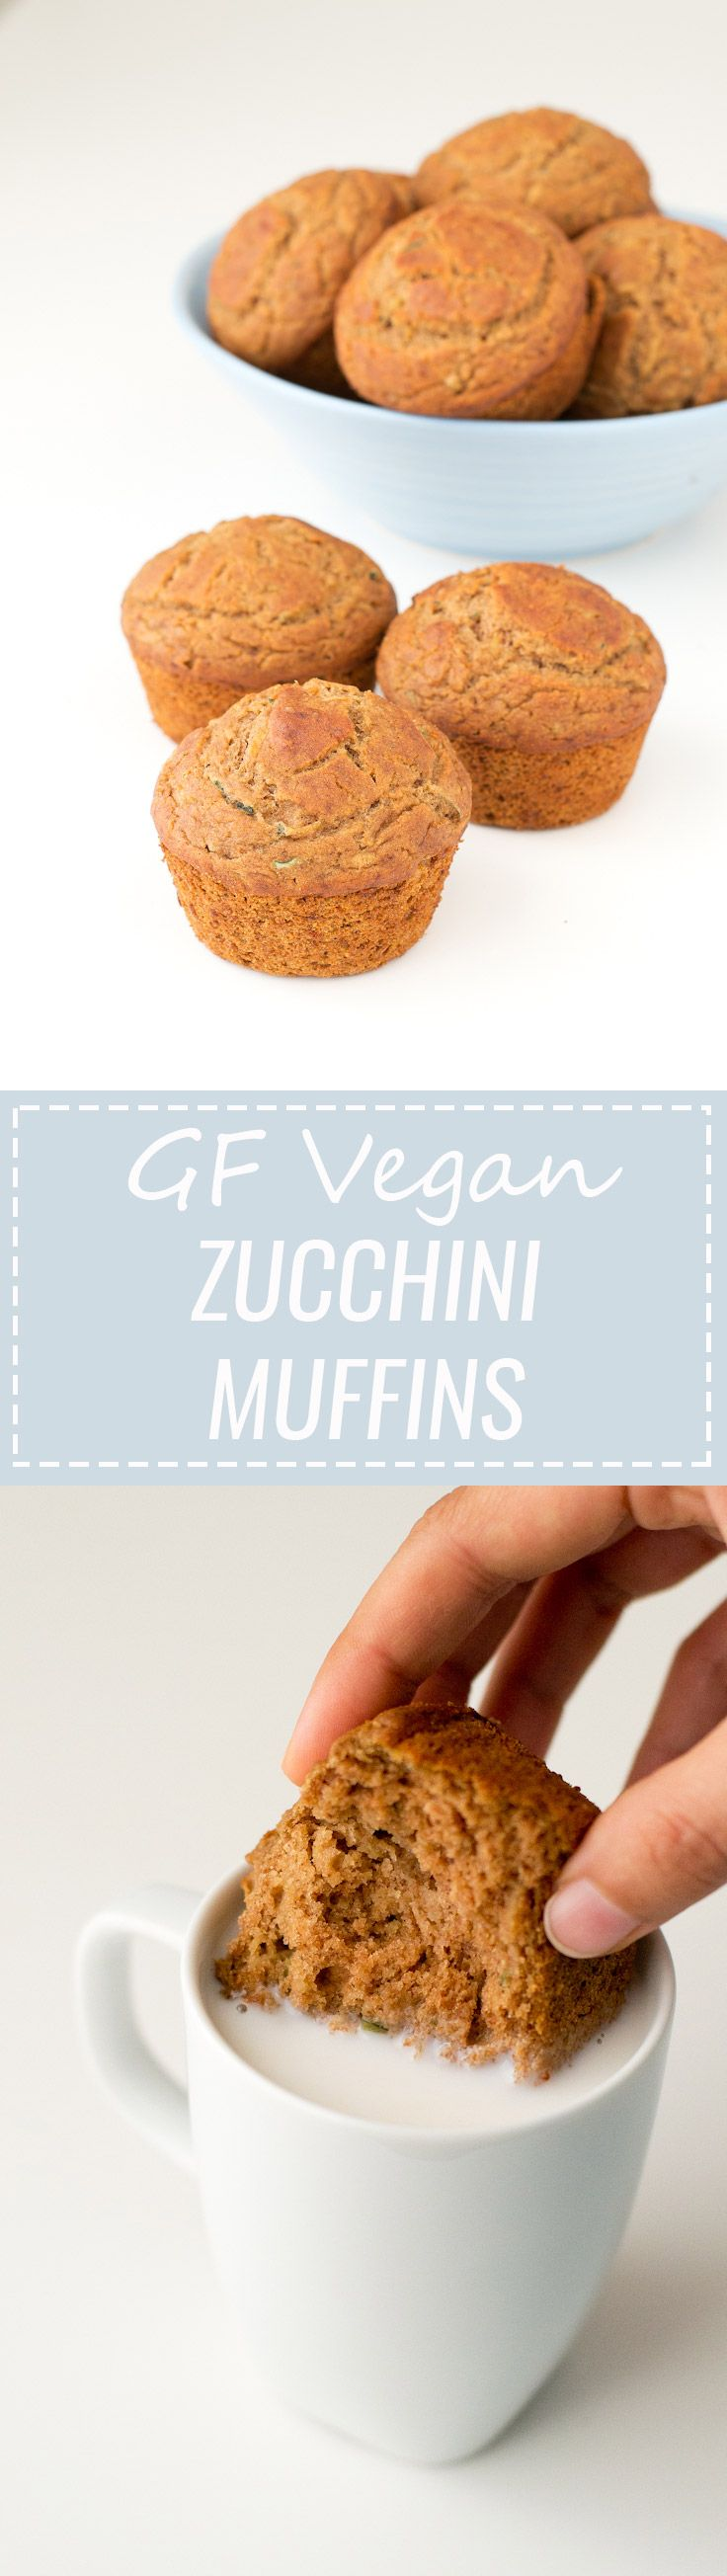 Gluten Free Vegan Zucchini Muffins - They're super delicious, soft and moist and the best gluten-free vegan muffins I've ever tried!